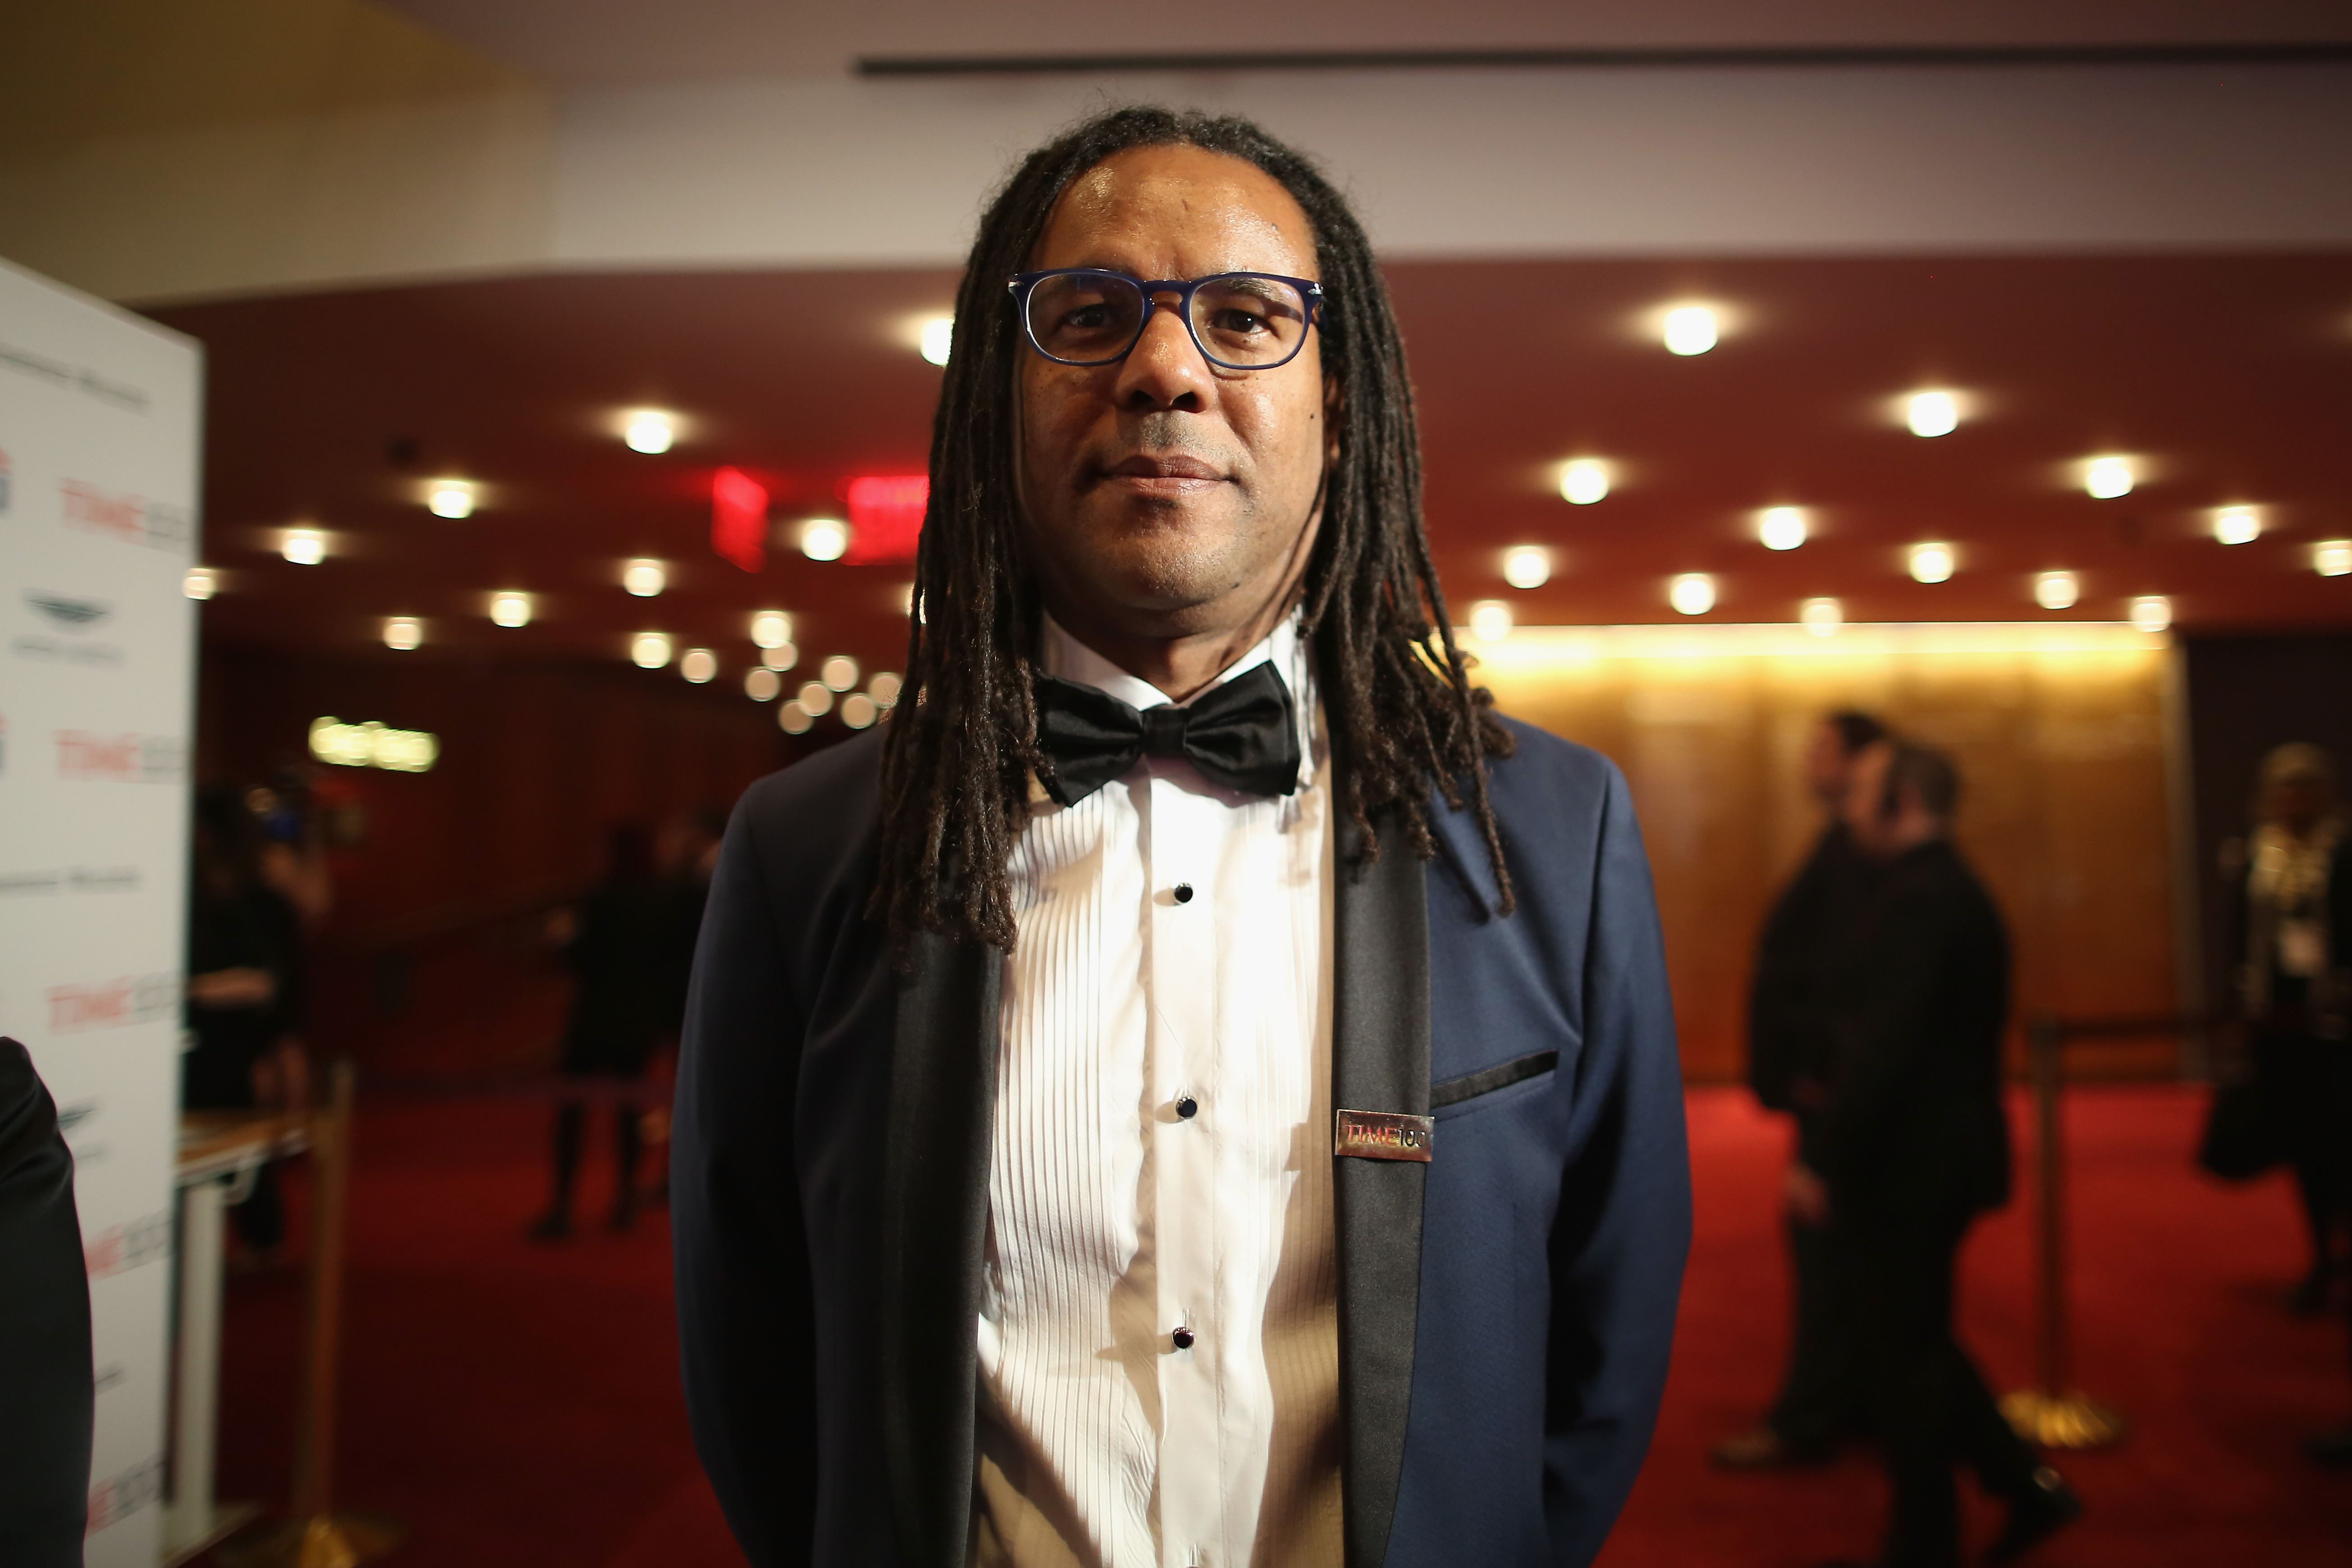 Author Colson Whitehead attends the 2017 Time 100 Gala at Jazz at Lincoln Center on April 25, 2017 in New York City.